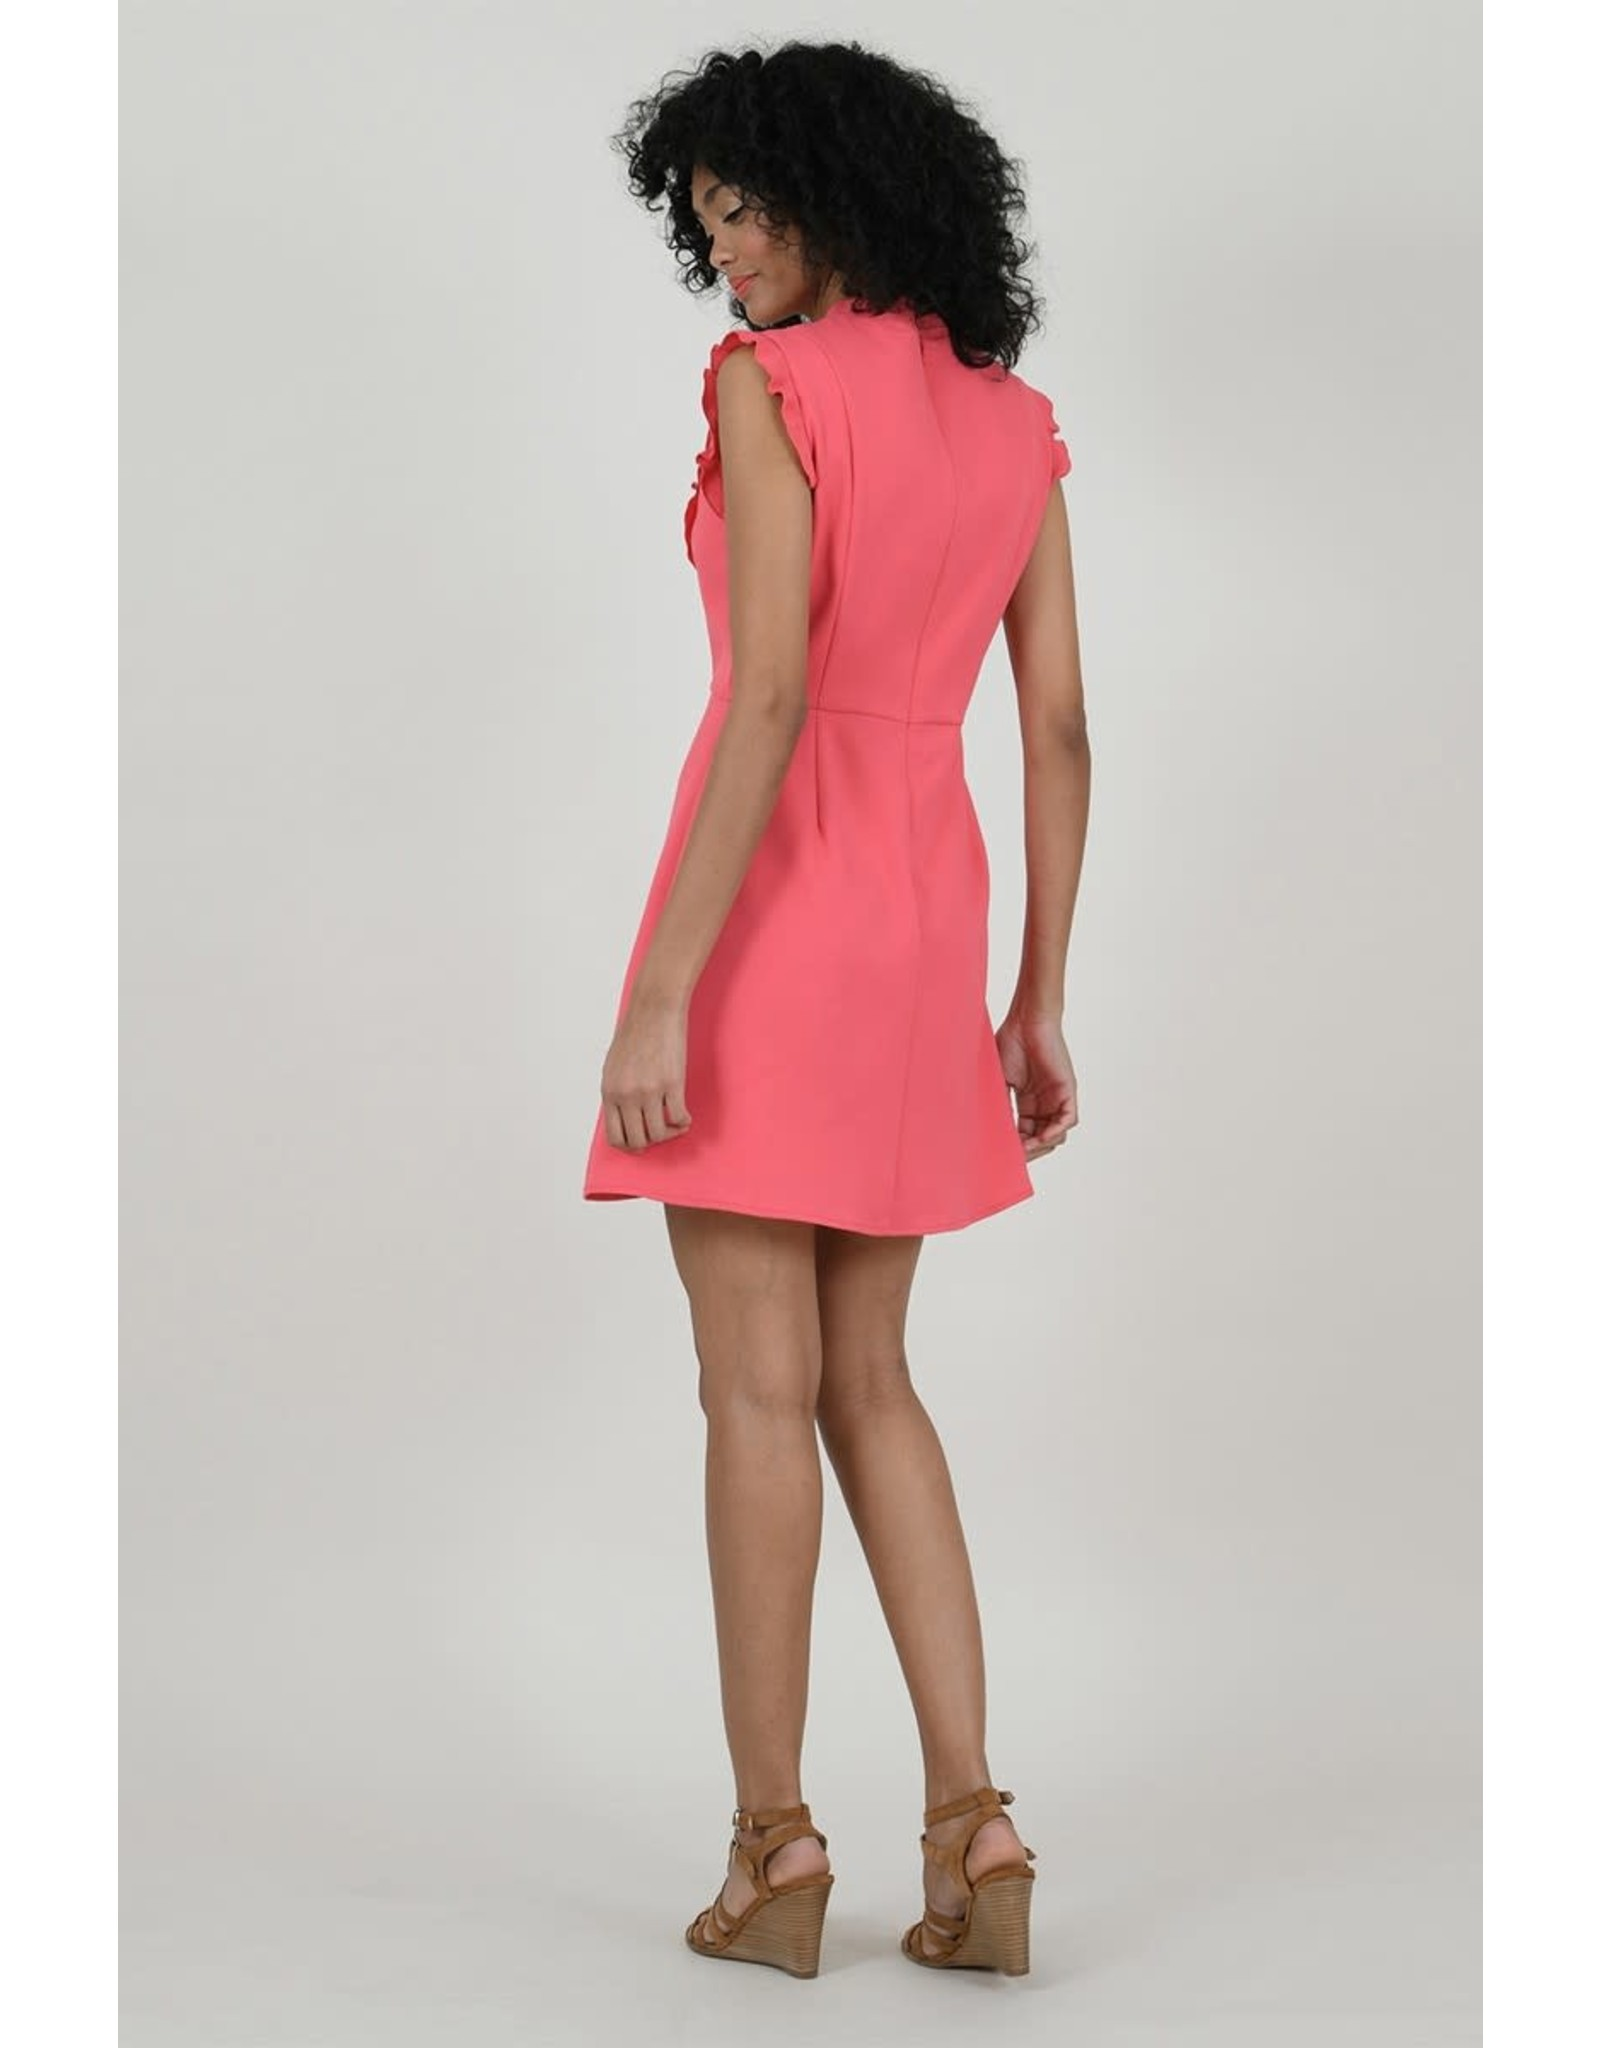 Molly Bracken, Skater Flounce Dress, Coral